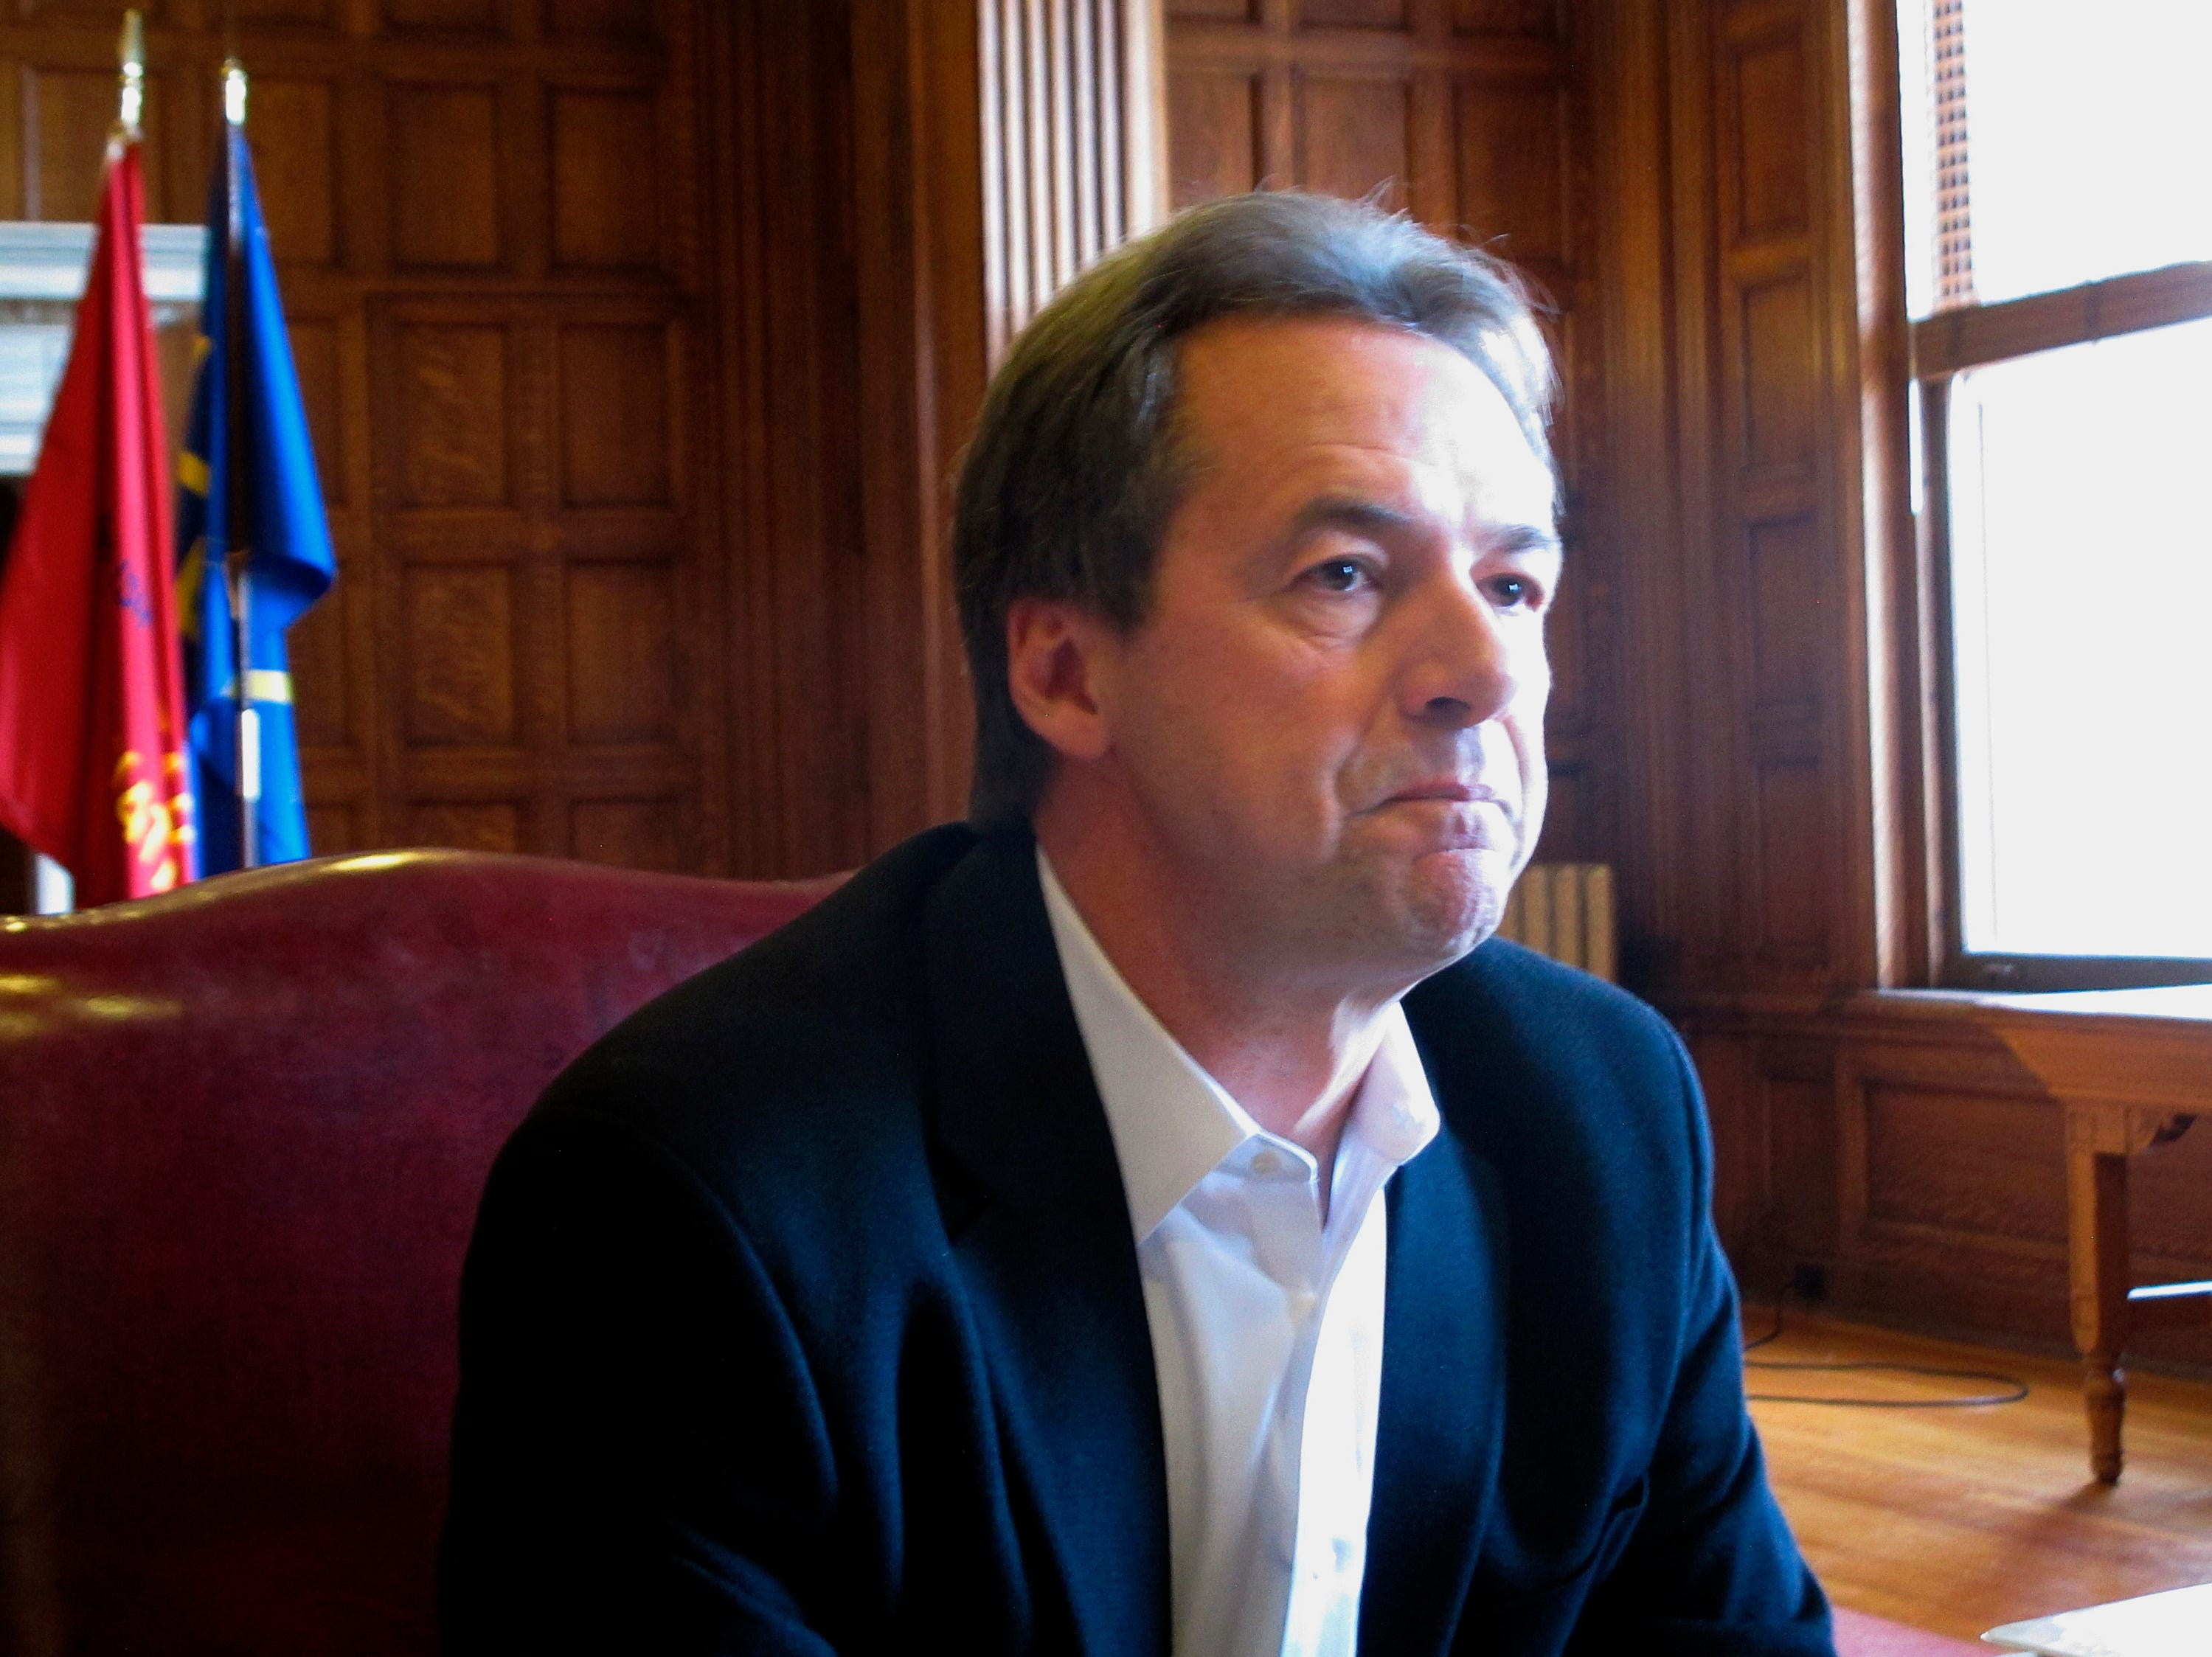 Montana Gov. Steve Bullock listens to a question during a news conference on Wednesday, Jan. 16, 2019, in Helena, Mont.. Bullock declined to say whether he plans to run for president in 2020, saying he is focused on the legislative session that began last week. (AP Photo/Matt Volz)